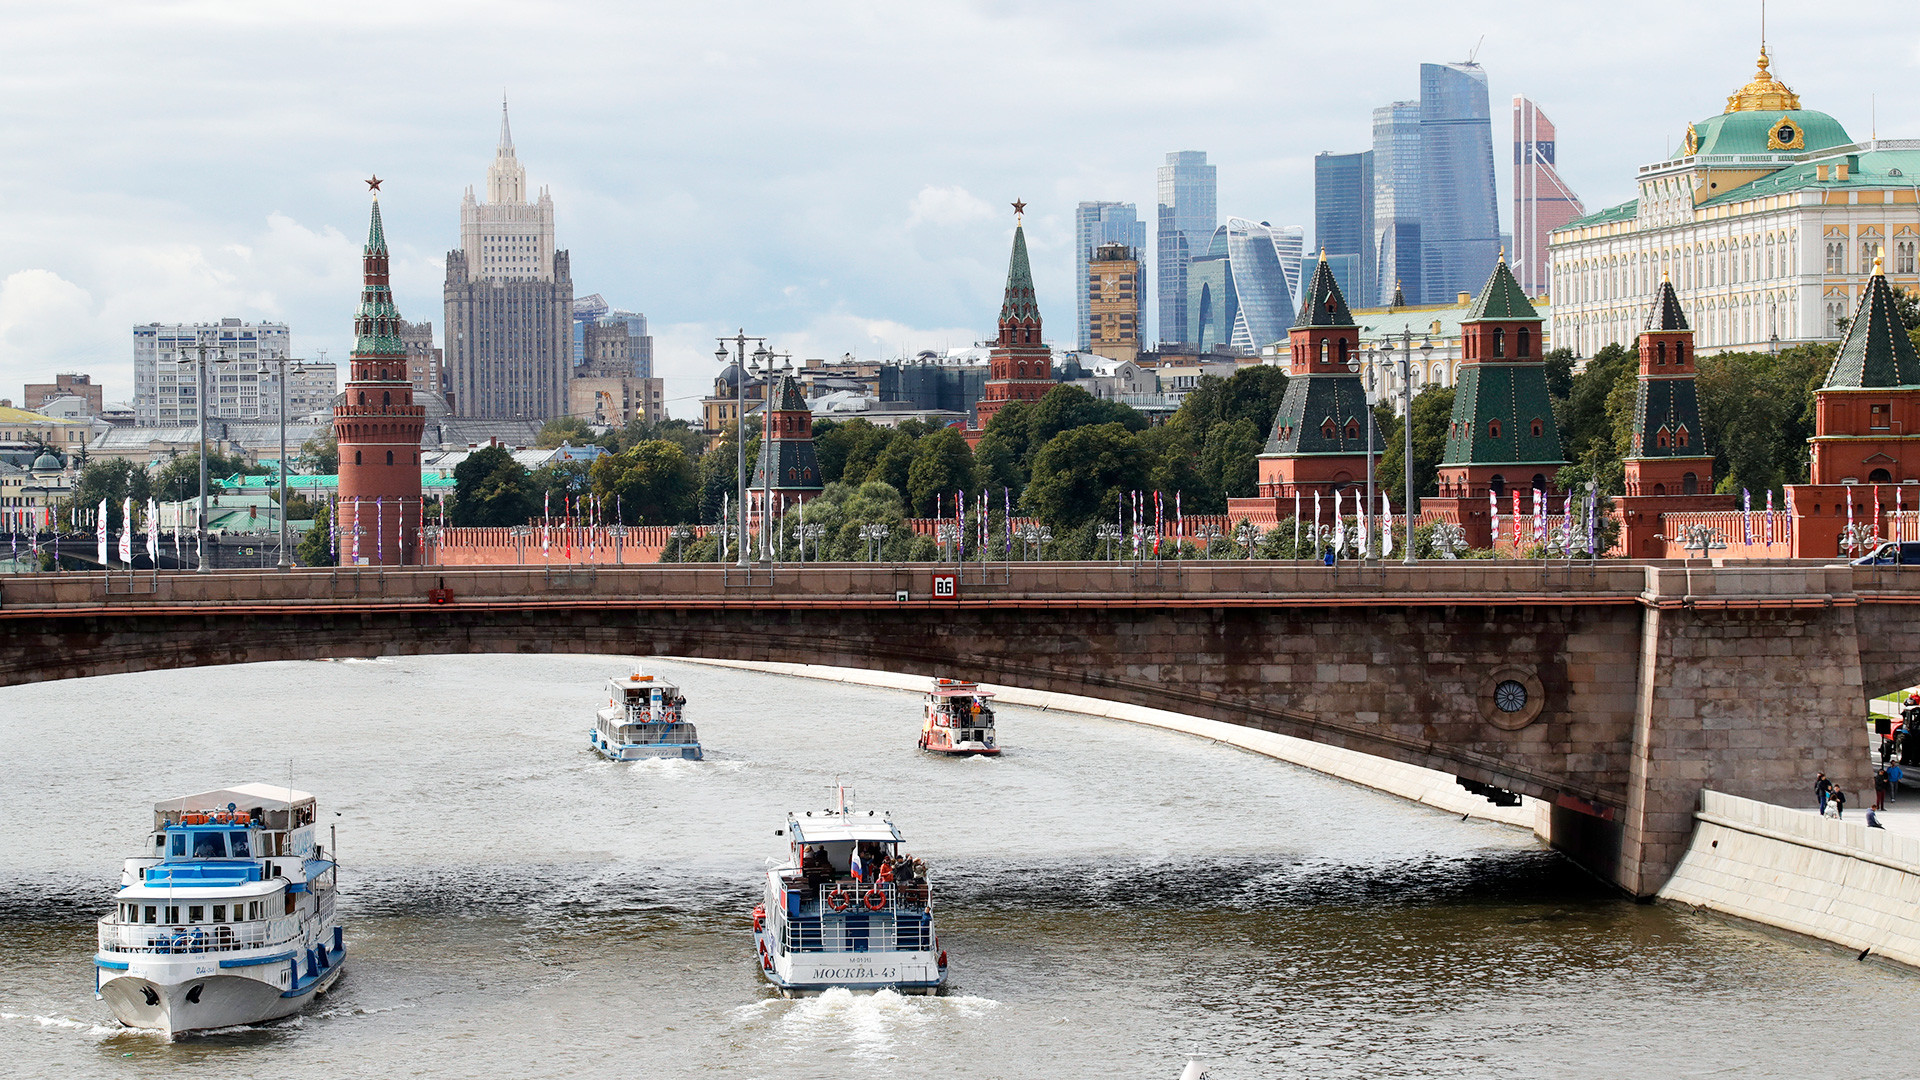 Pleasure boats making their way along the Moskva River.